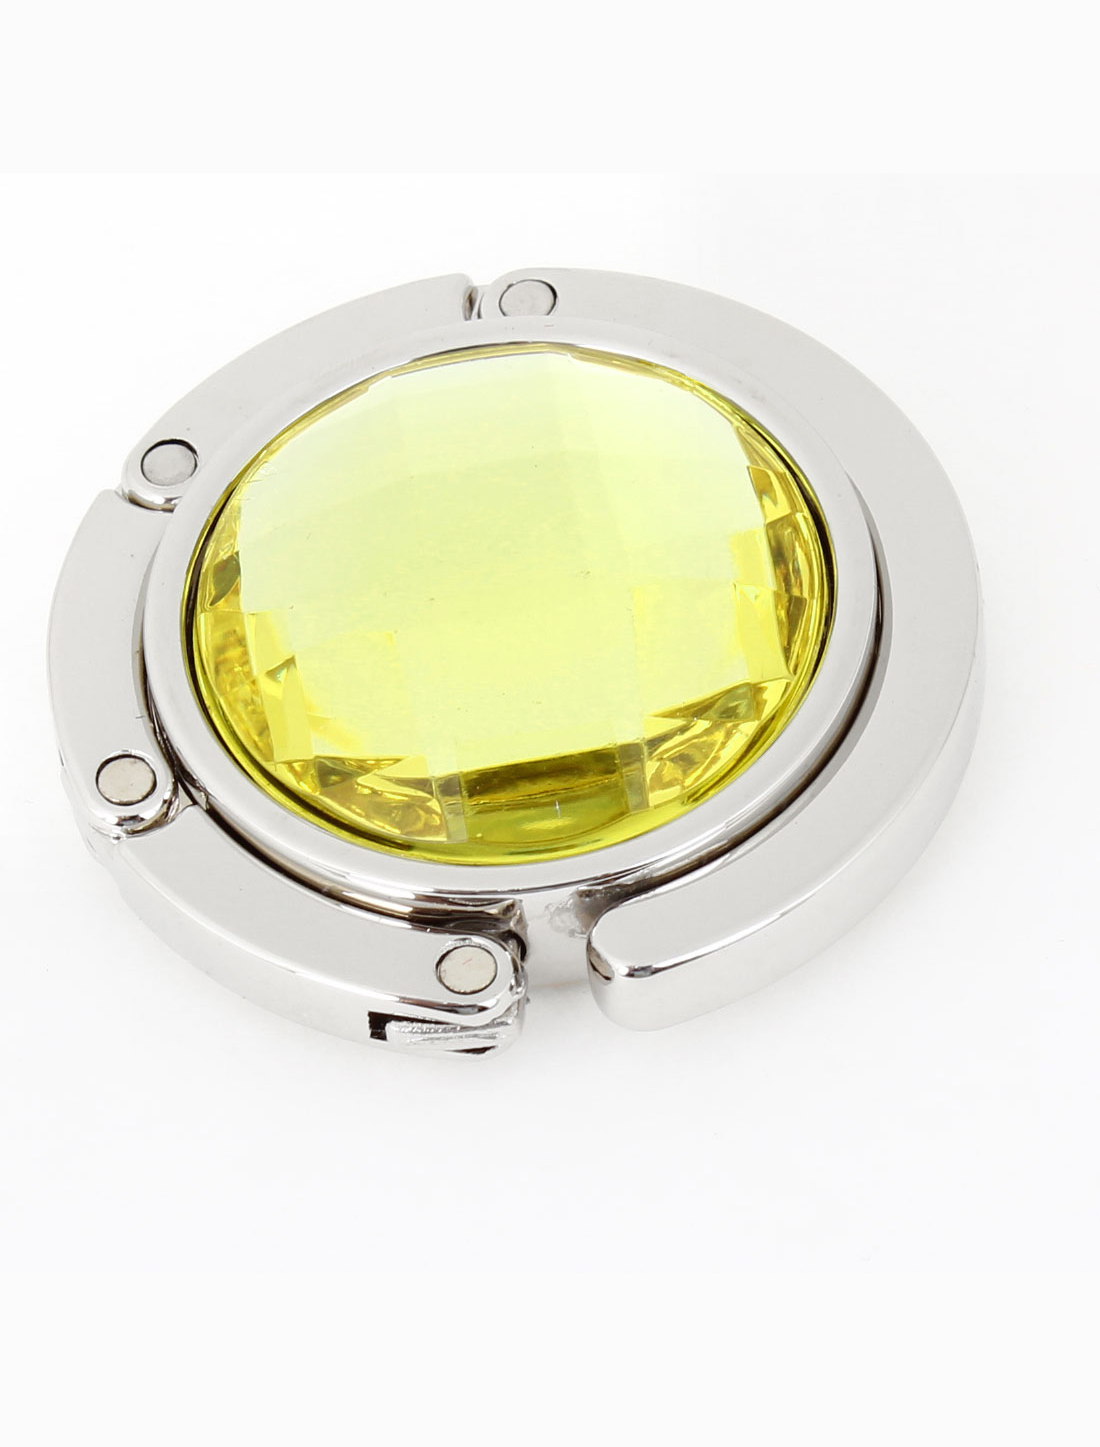 Ladies Yellow Plastic Crystal Detailing Rubber Base Handbag Hook Holder